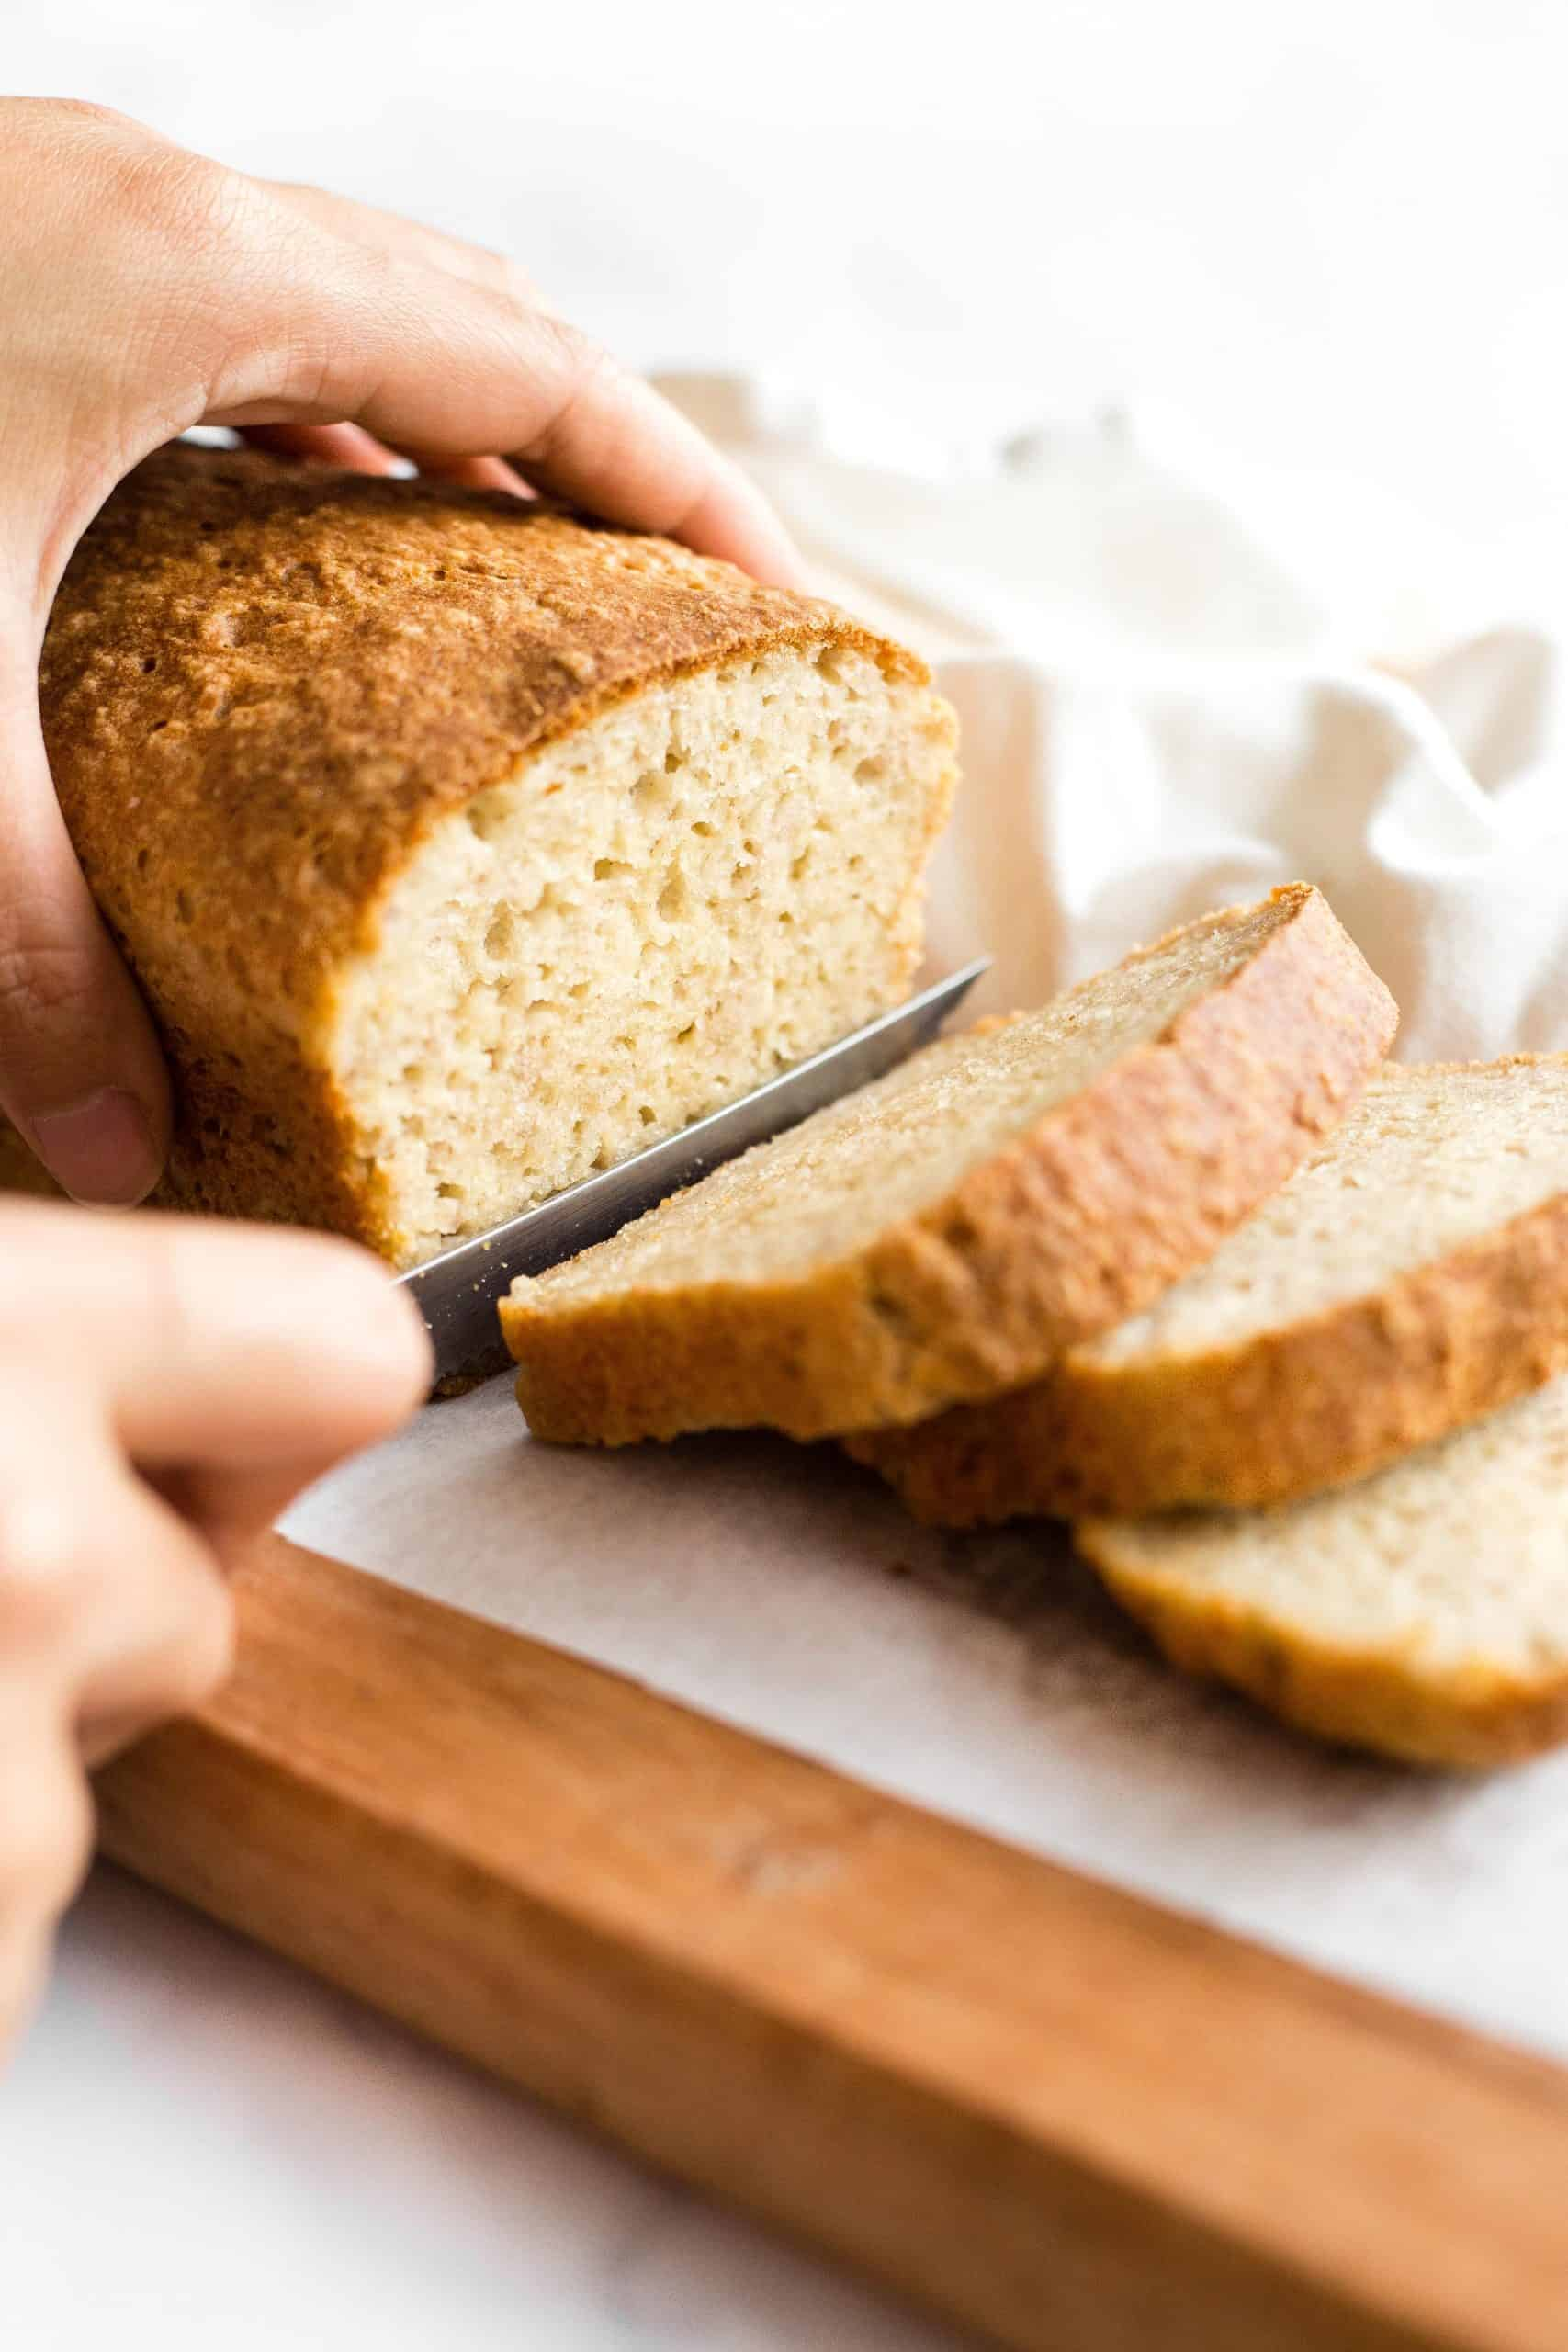 Hand slicing into a loaf of bread.